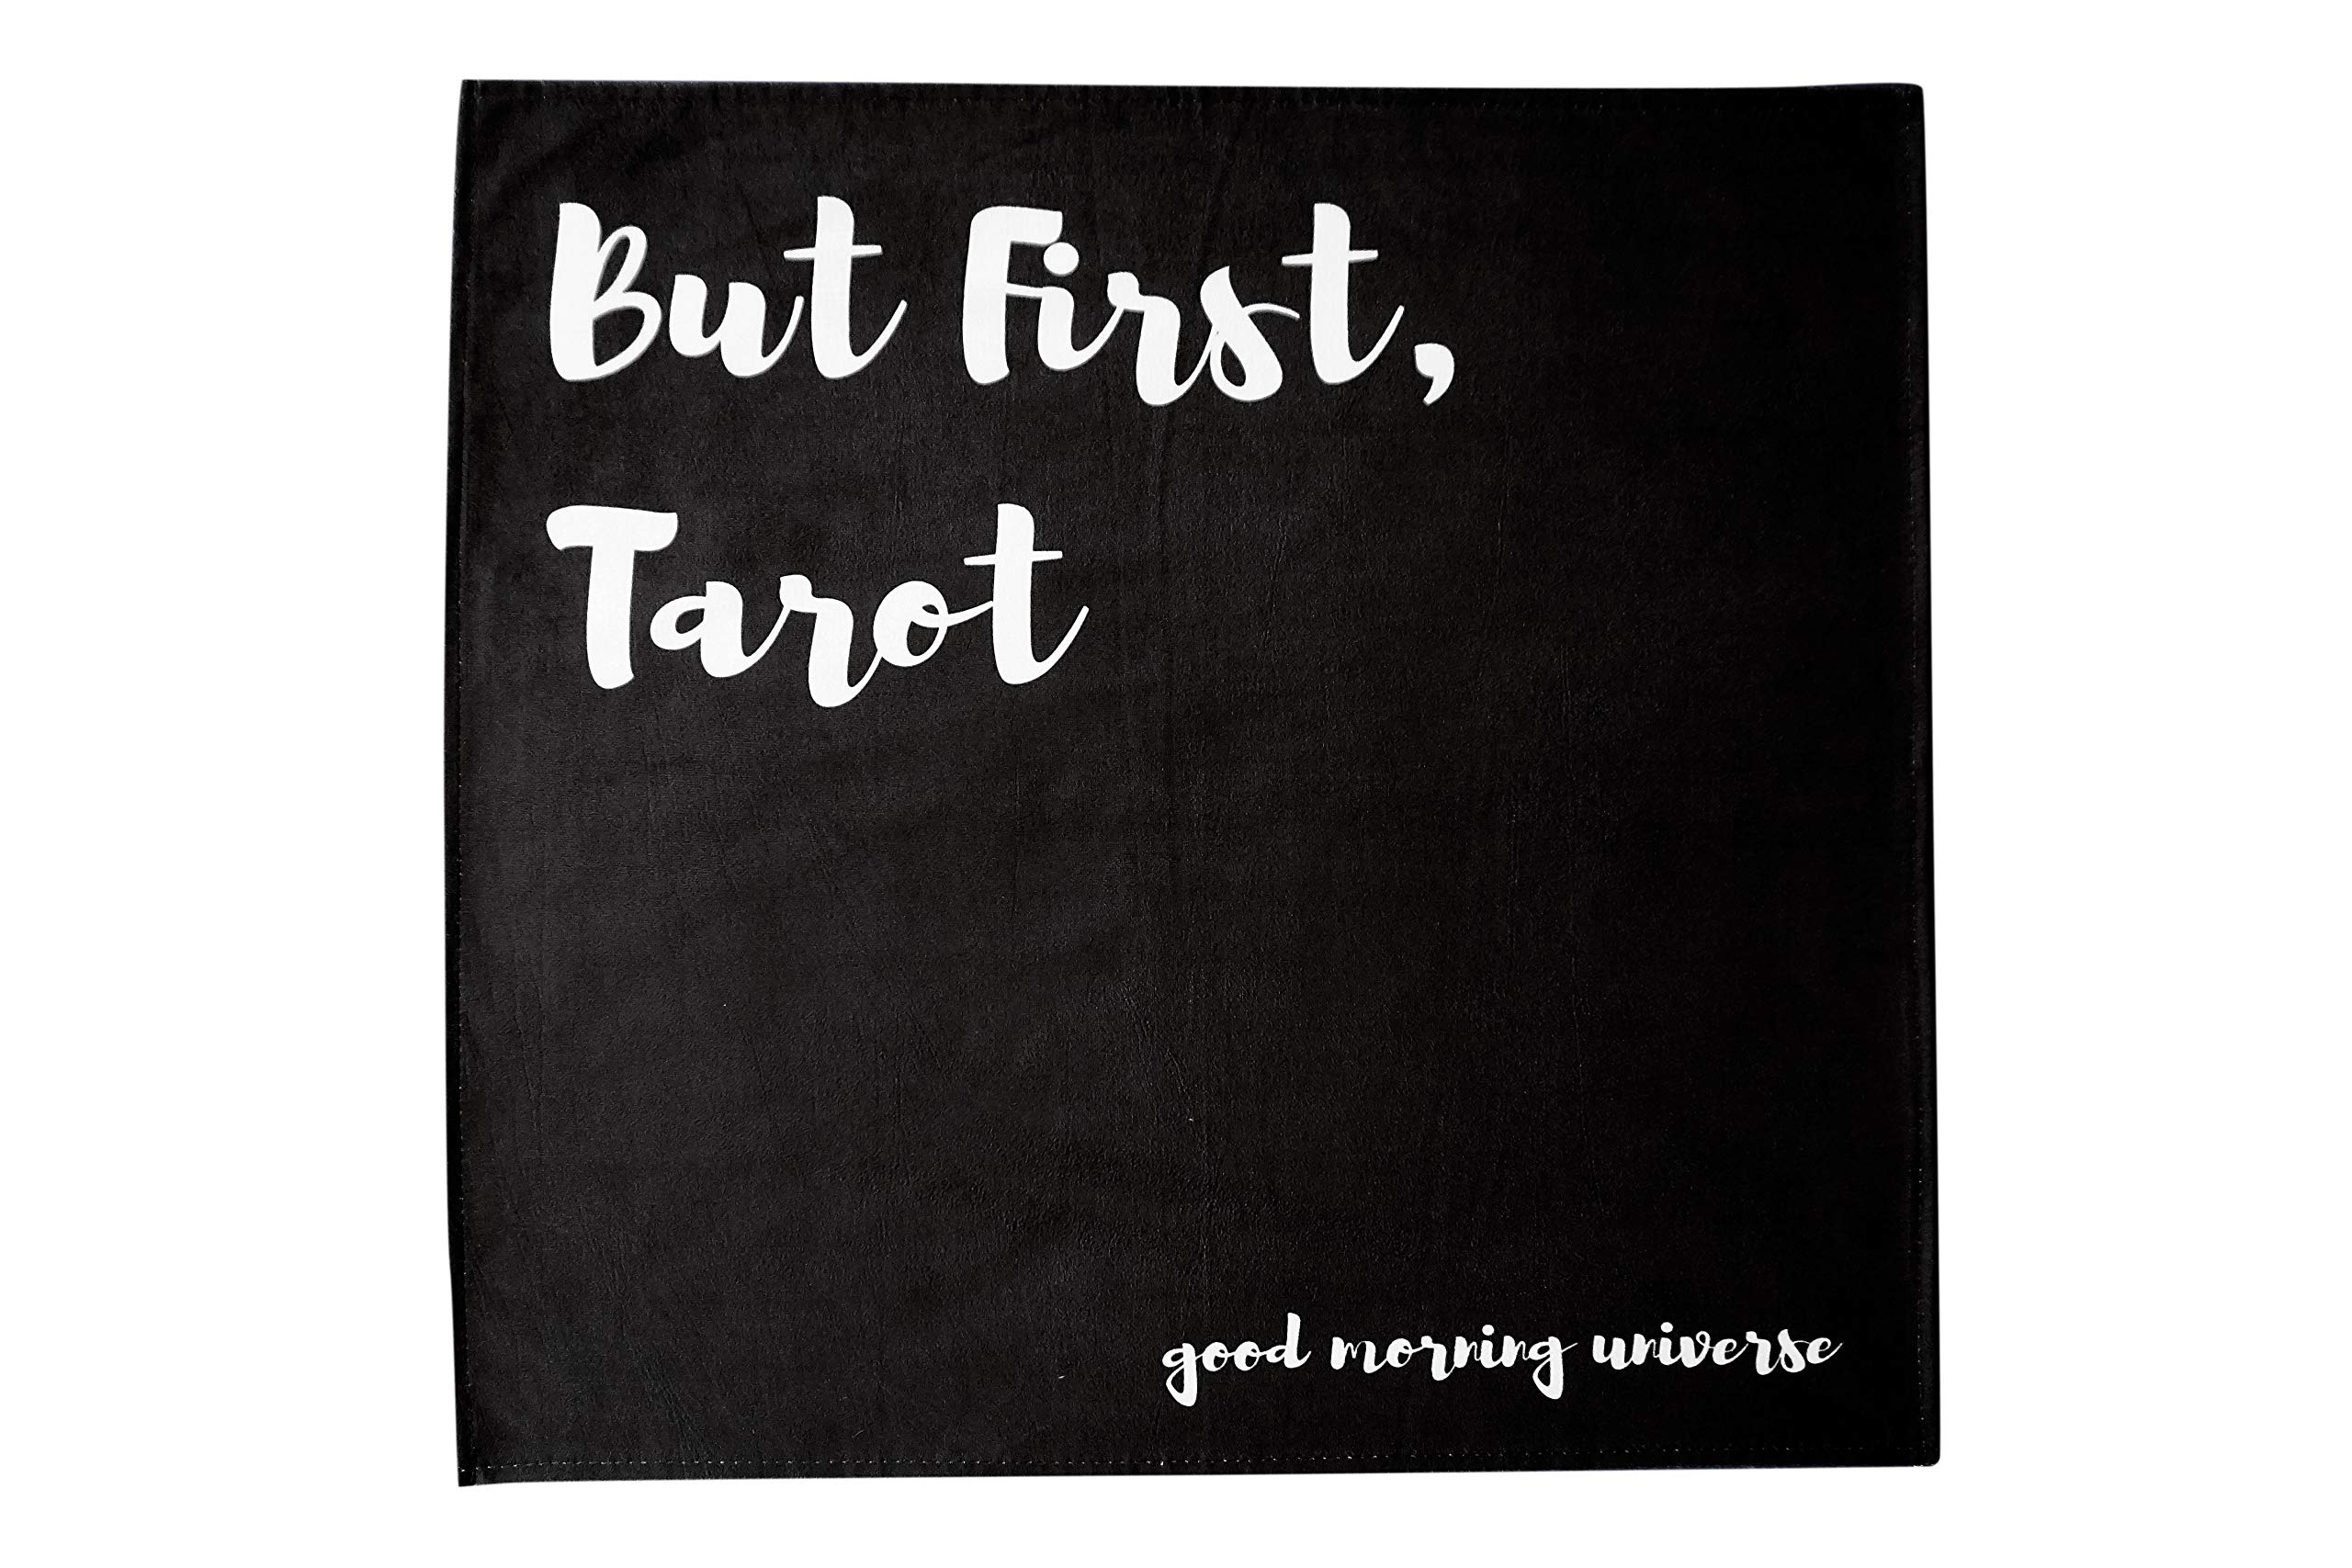 Altar Tarot Cloth with Good Morning Universe (Large, Black, 24 inches x 24 inches) by Hidden Crystal Tarot (Image #1)